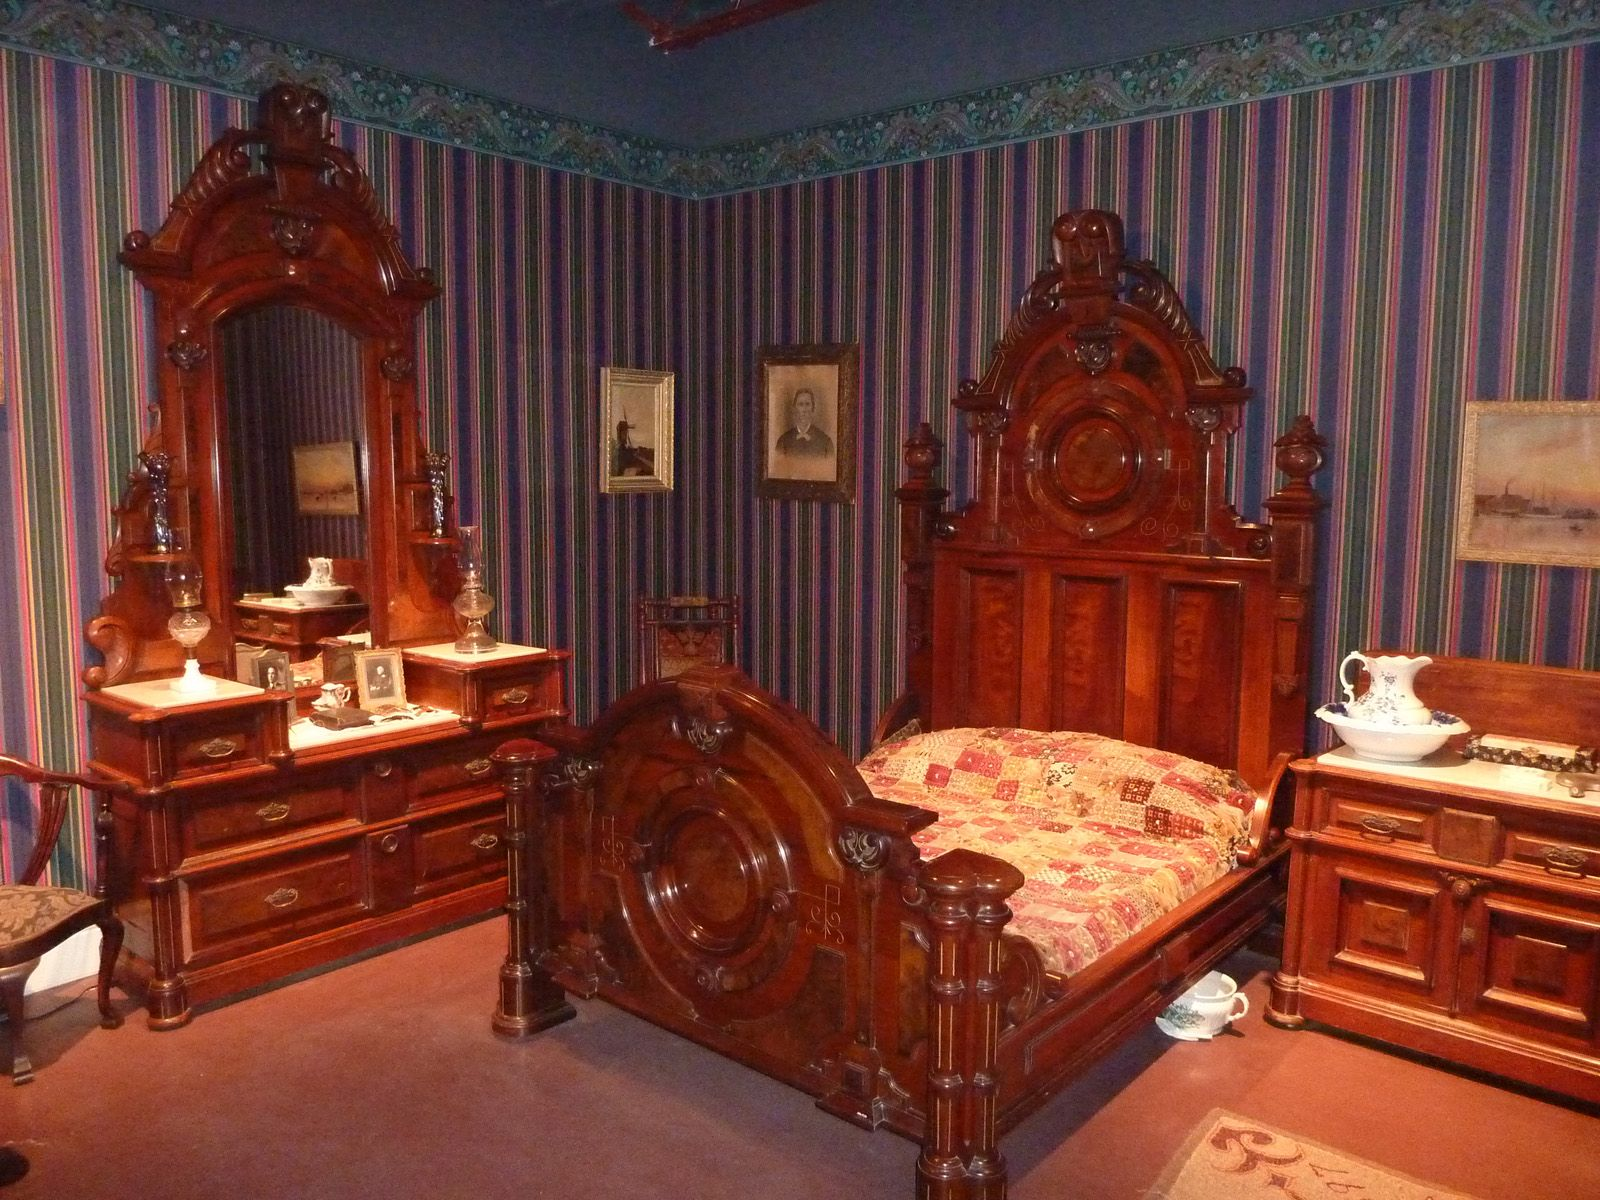 Elegant Victorian Bedroom Furniture Of The 19th Century. Description From  Historylines.net. I Searched